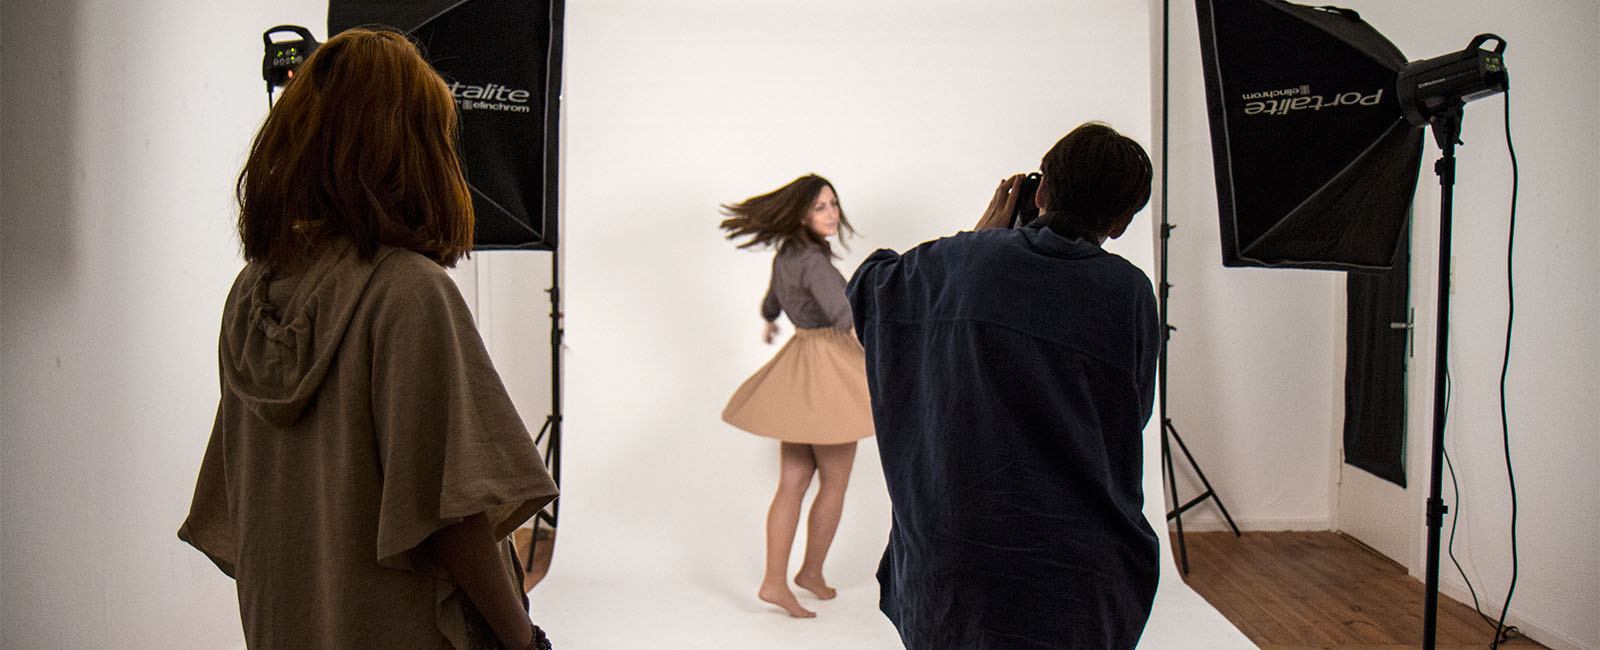 F/16 School For Photography | Closing Date For Applications